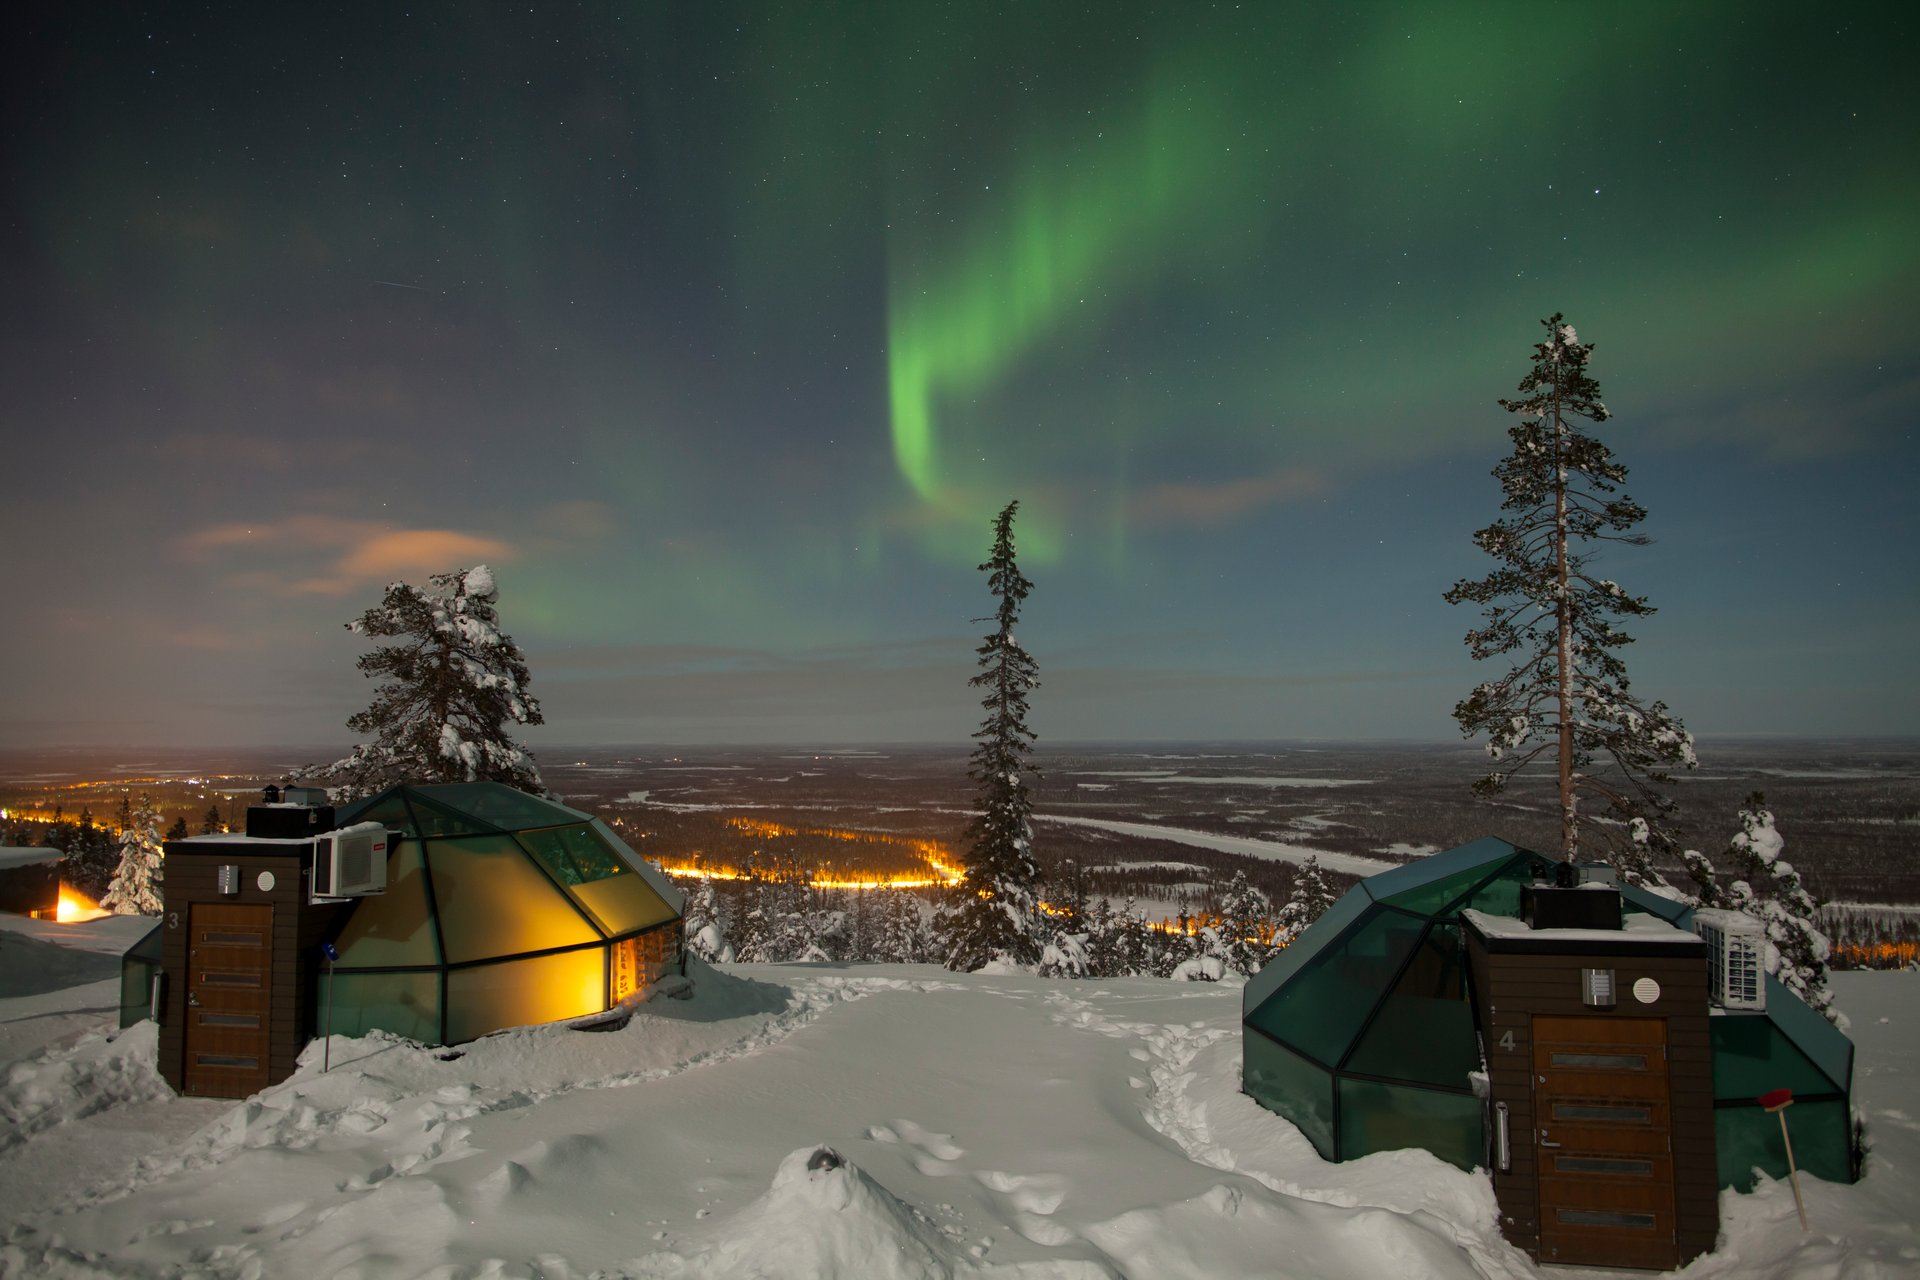 Stay in the Glass Igloo in Finland - Best Season 2020